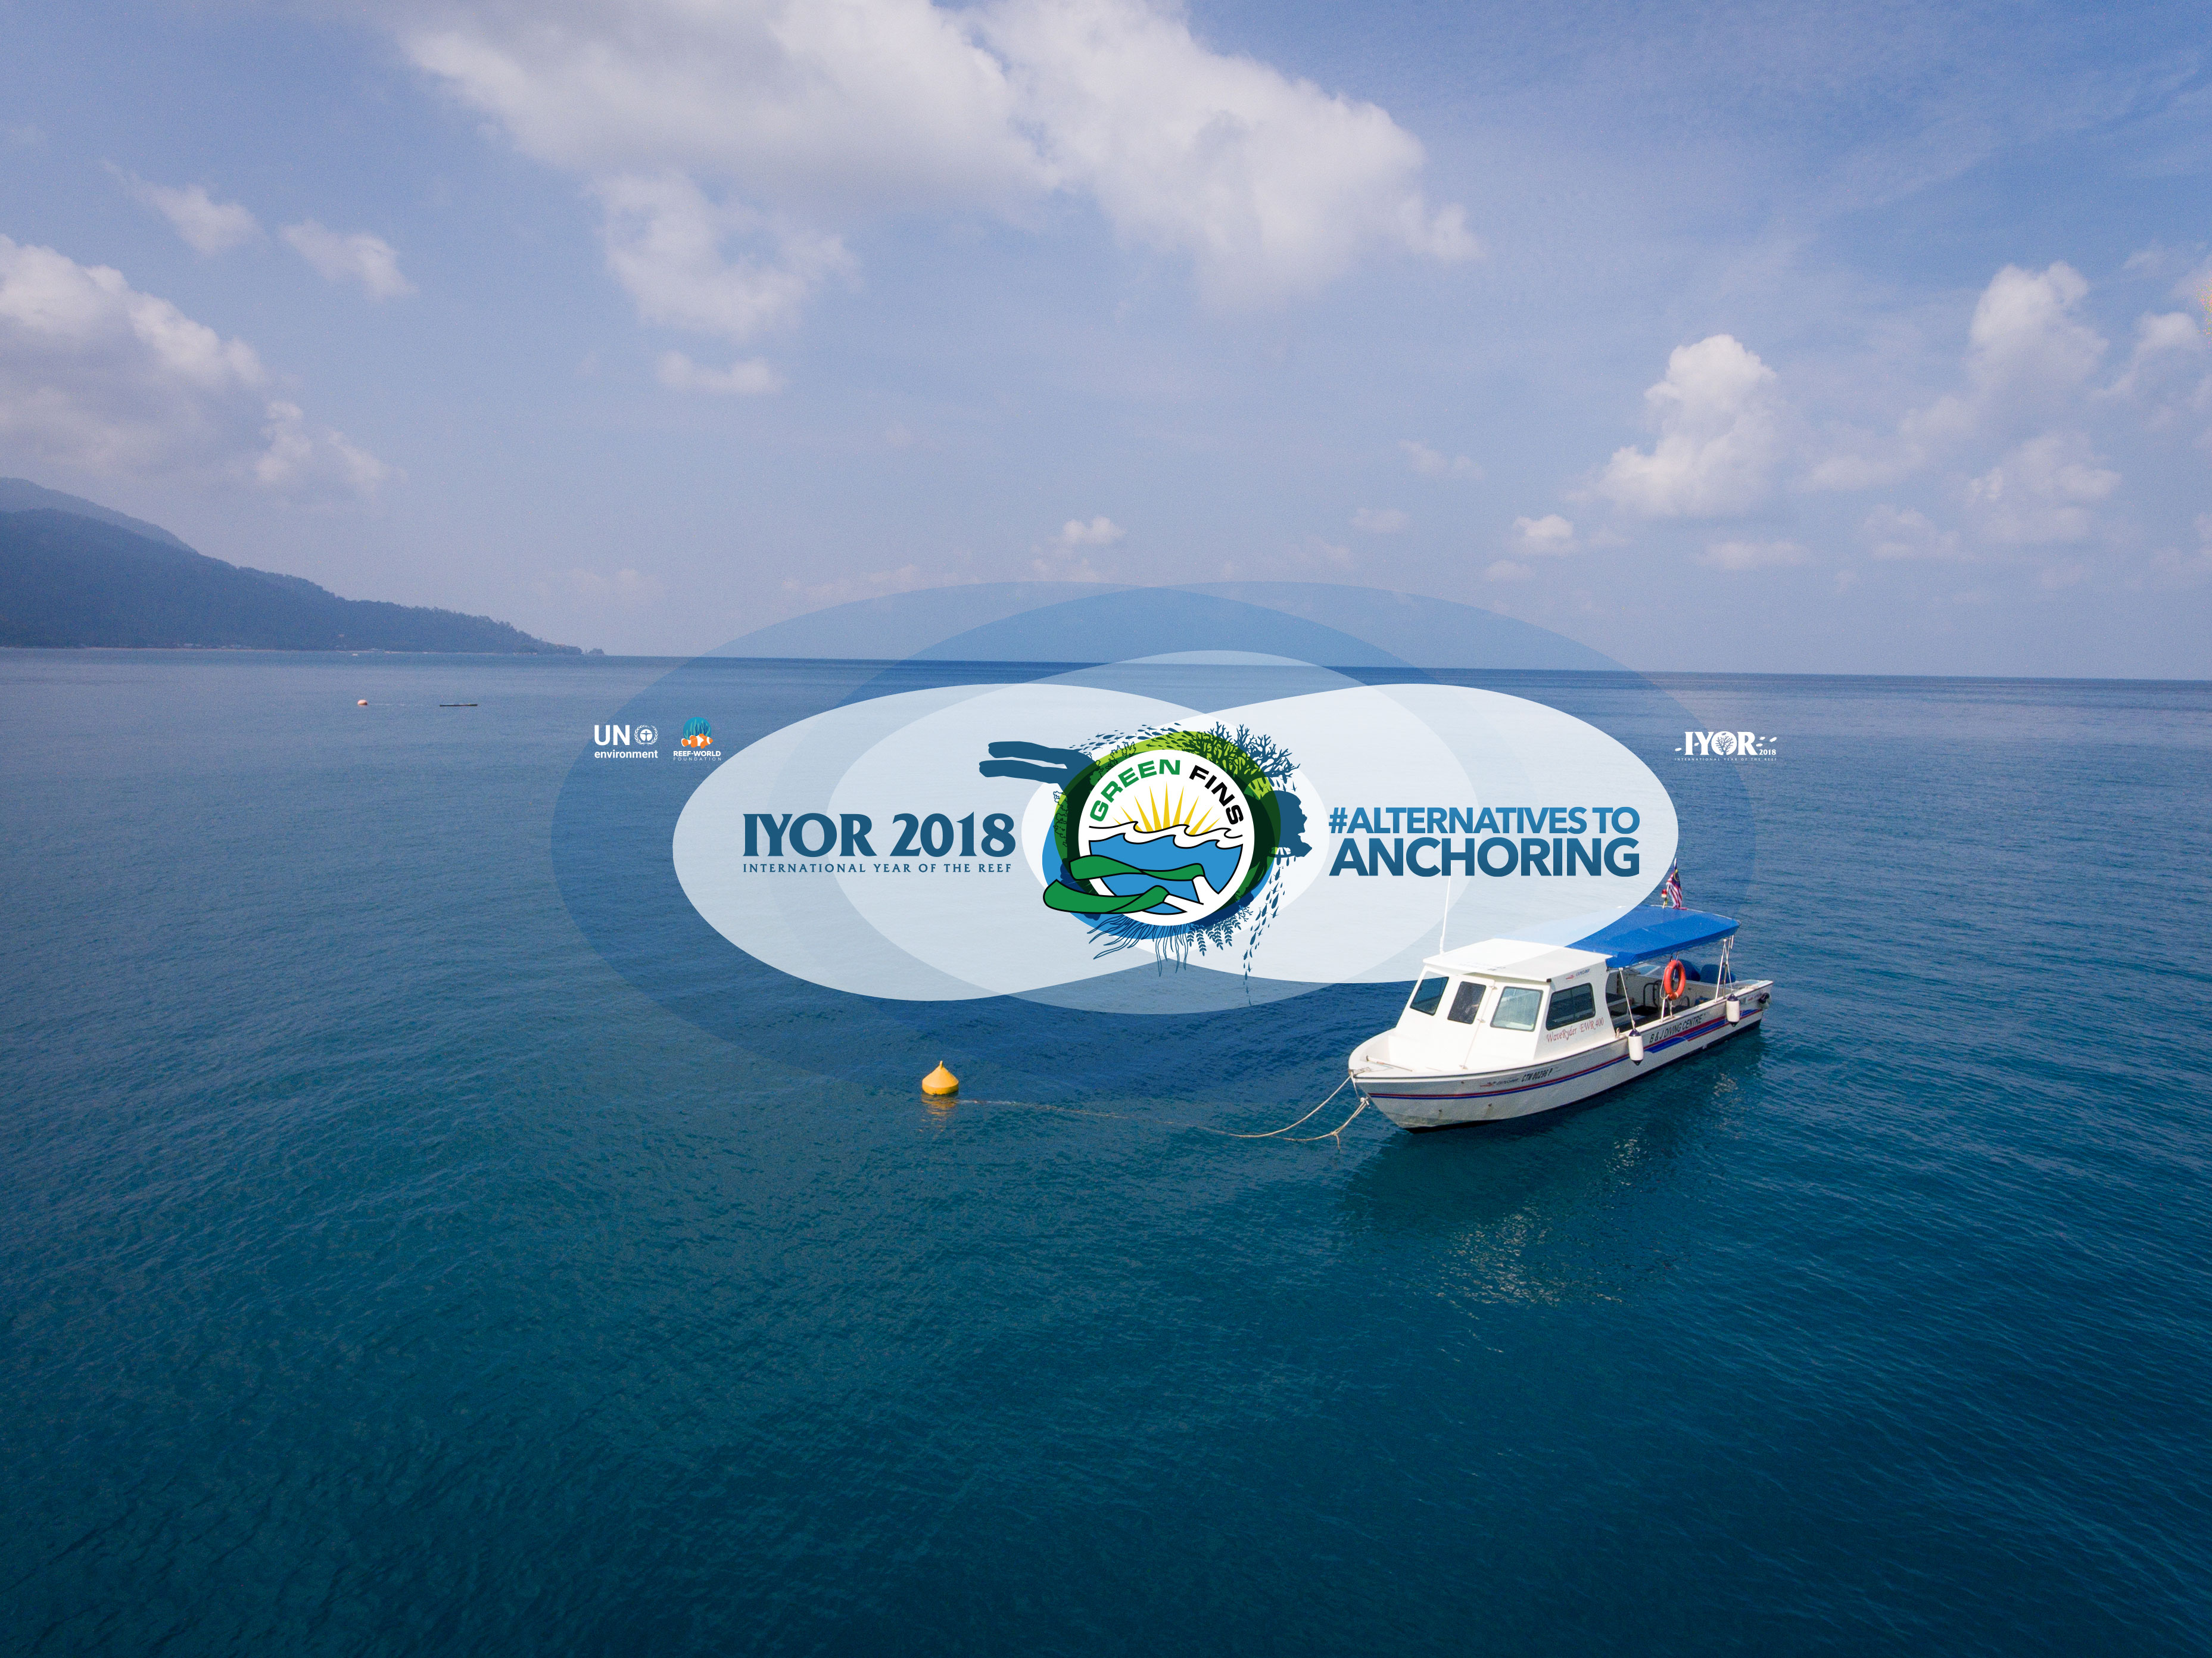 Green Fins IYOR Campaign: Alternatives to Anchoring